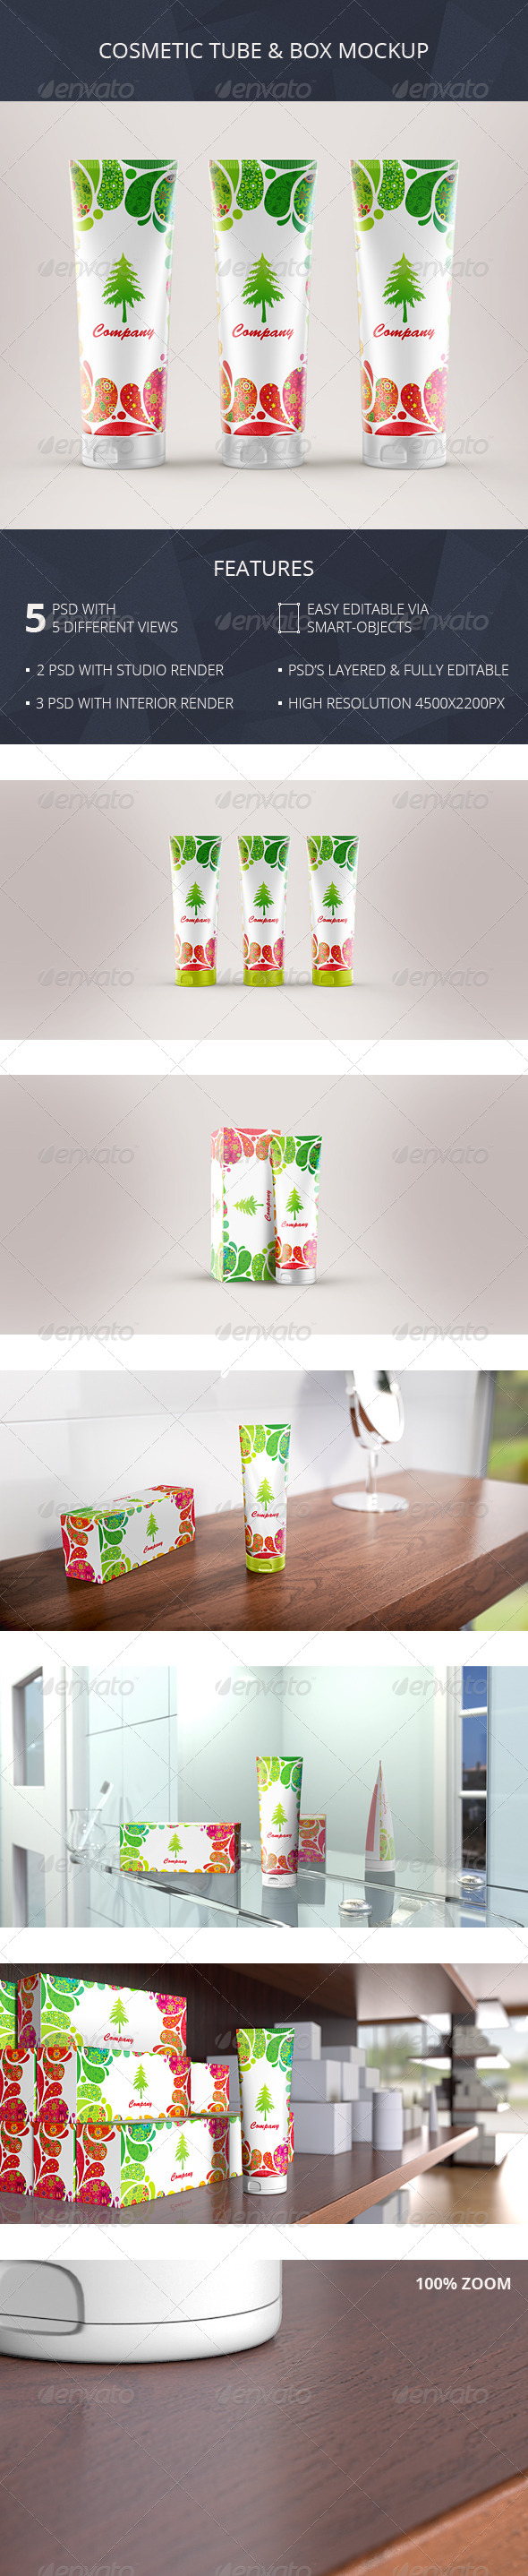 GraphicRiver Cosmetic Tube & Box Mockup Toothpaste Packaging 7263155